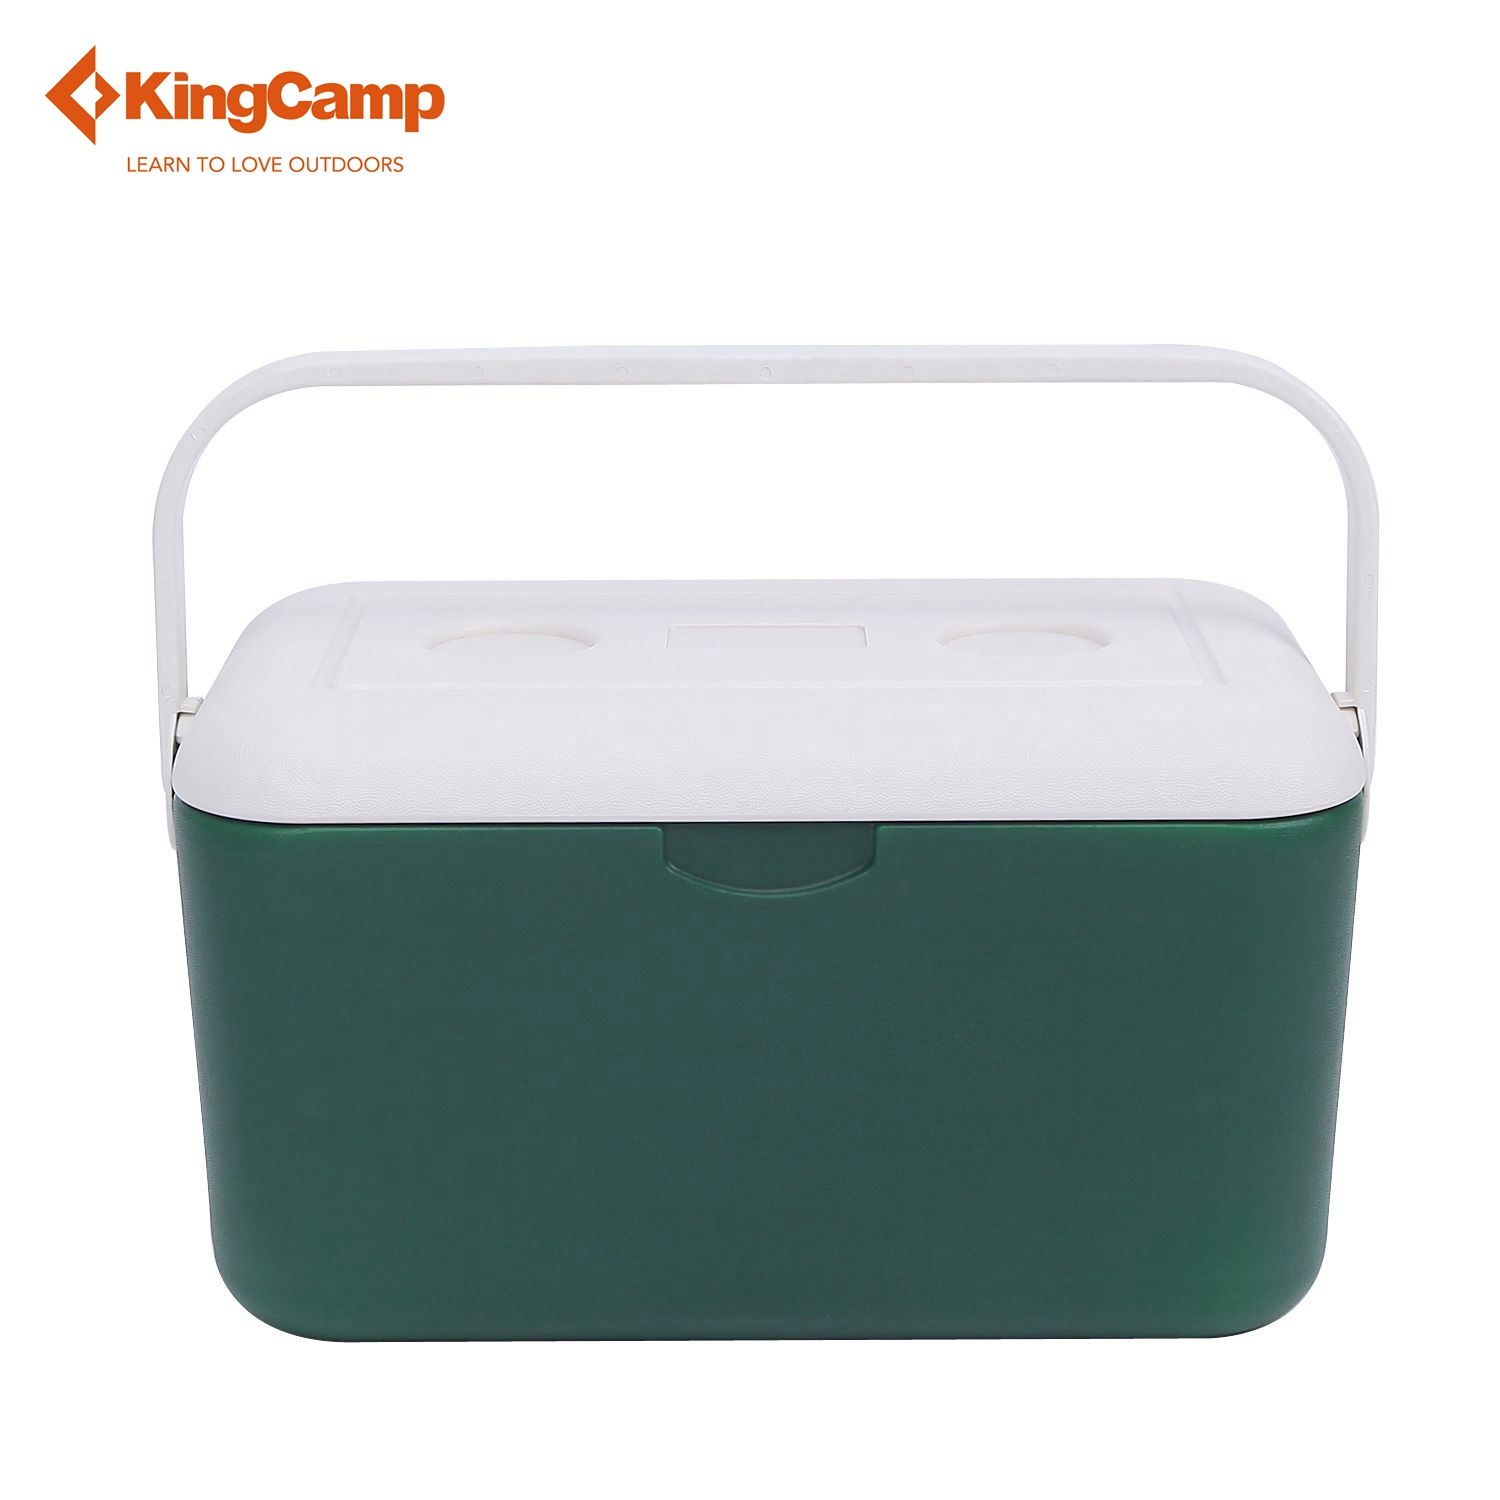 KingCamp 2018 Big Capacity 20L Portable Ultralight Travel Car Cooler Box for Outdoor Cooking Picnic Barbecue Camping Food kingcamp 2016 big capacity 20l portable ultralight travel car cooler box for outdoor cooking picnic barbecue camping food